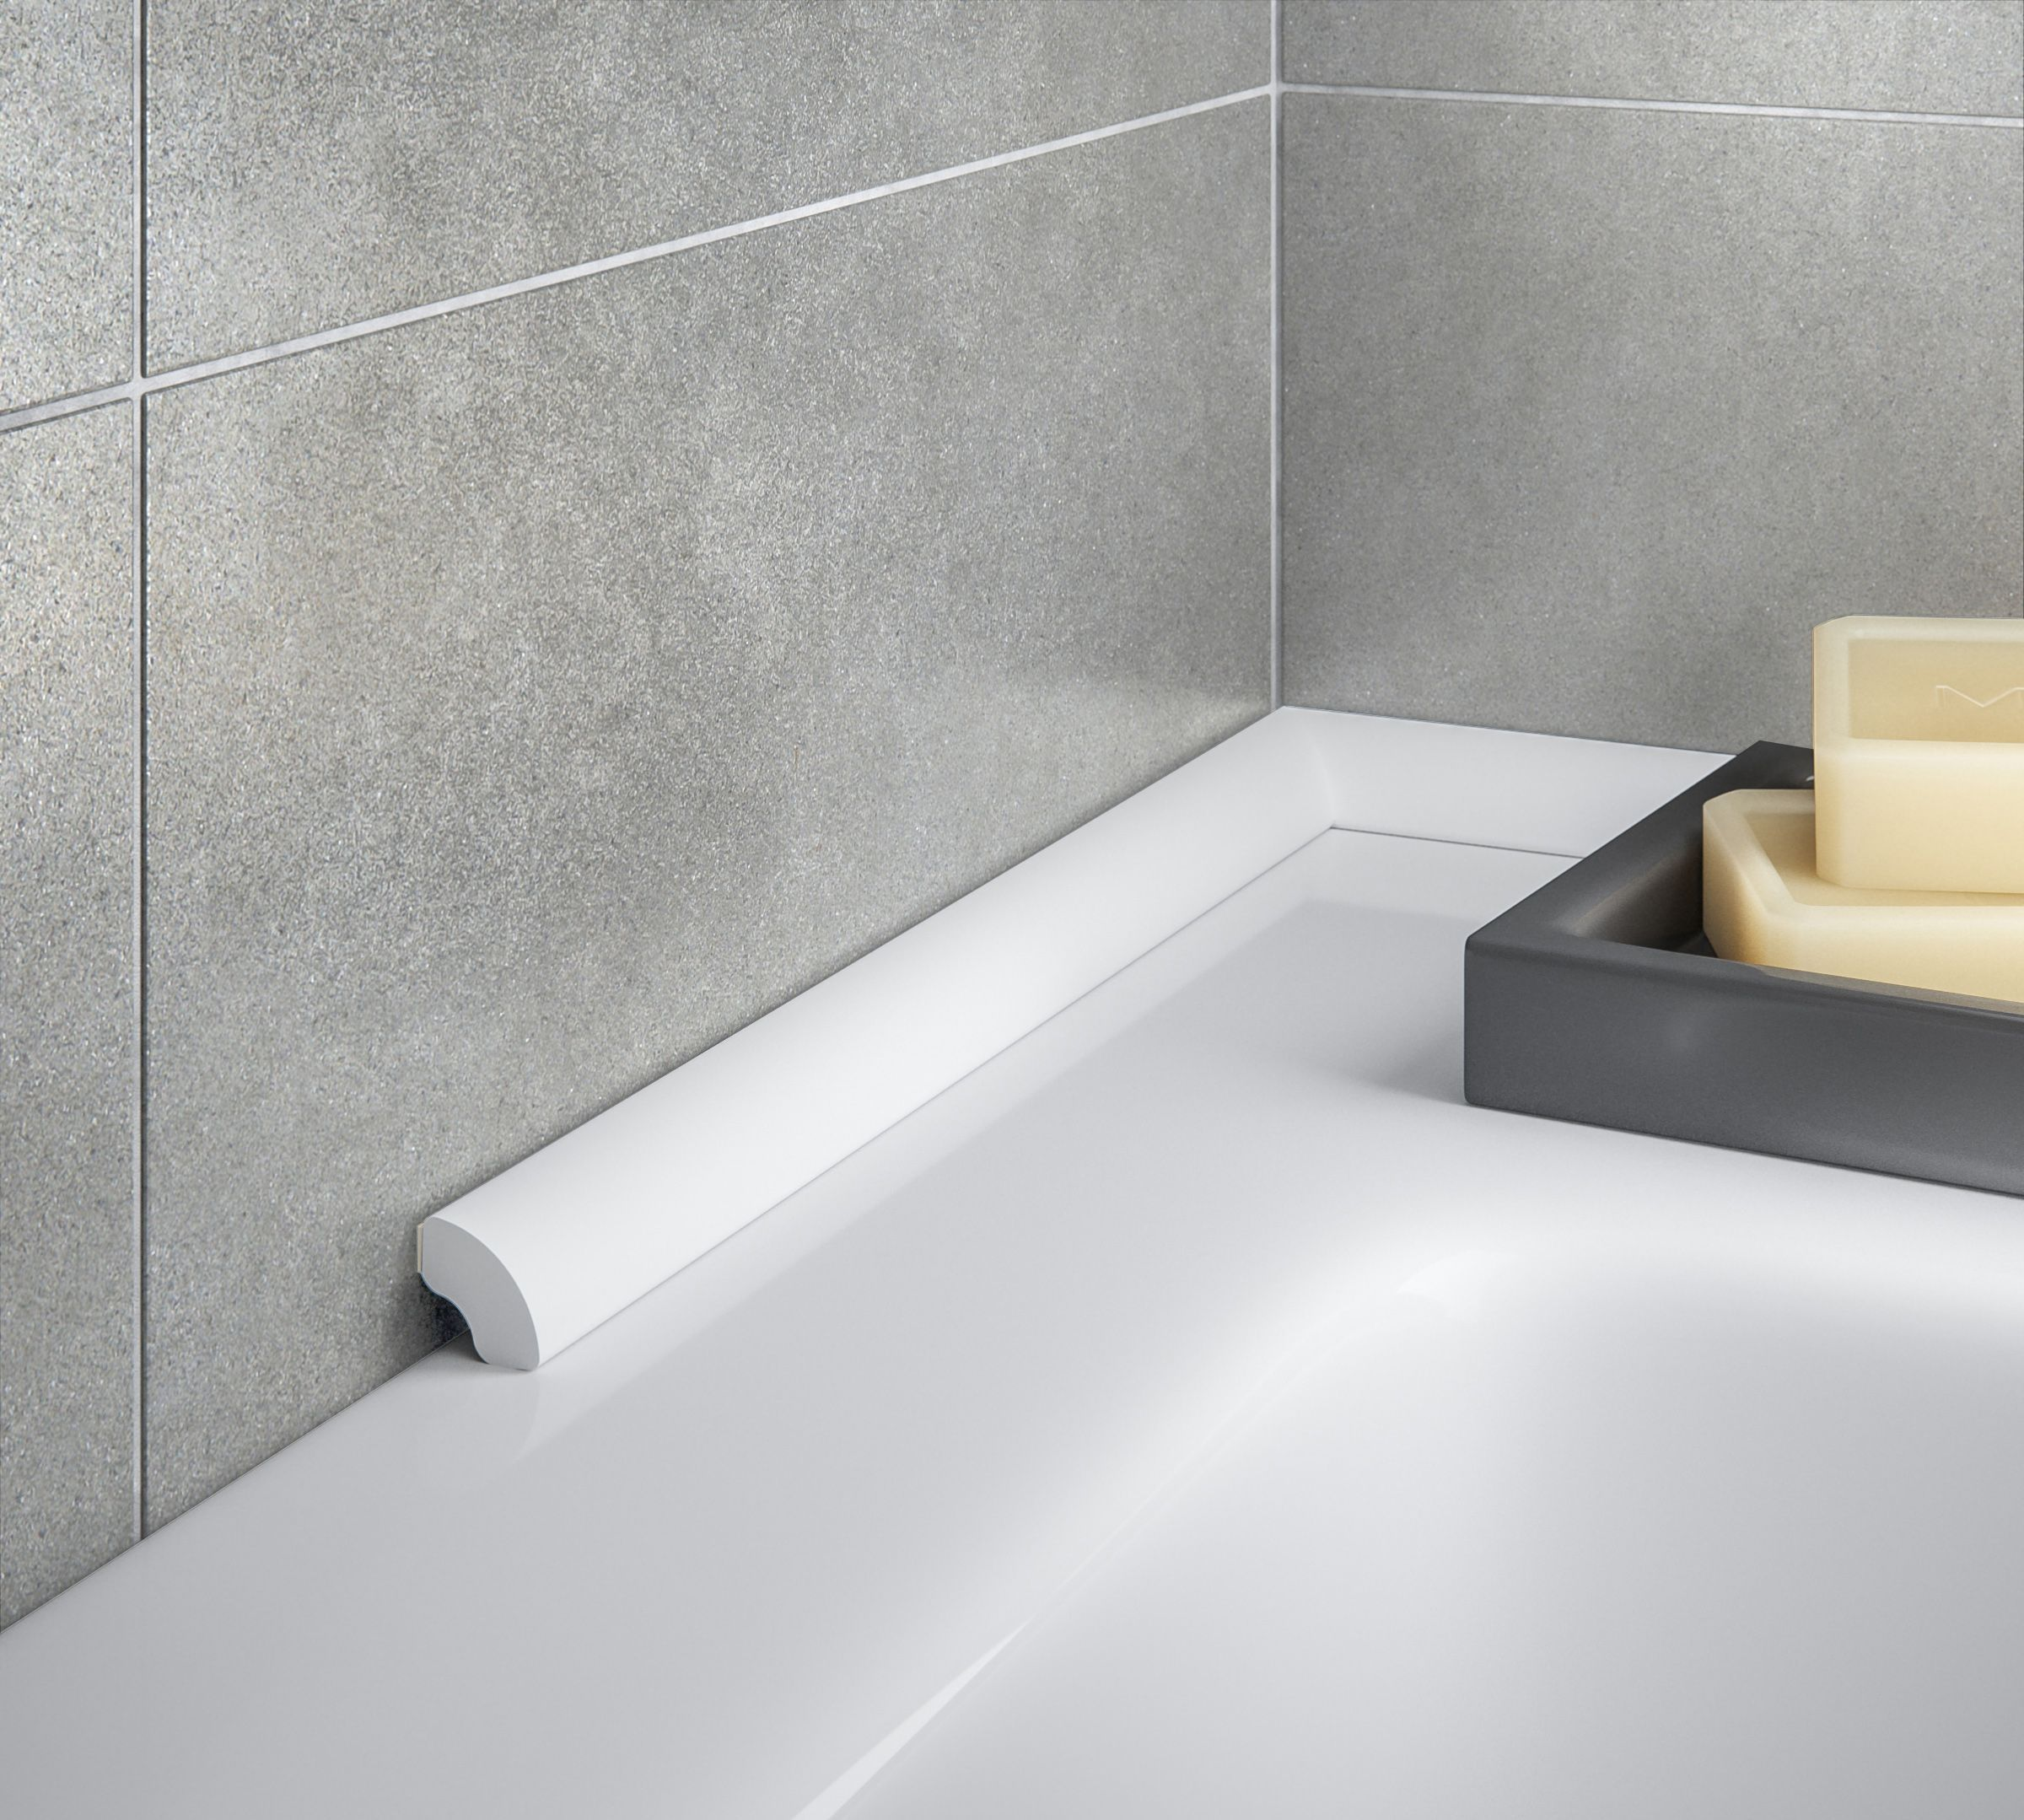 Charmant Self Adhesive Bath Seal Trim